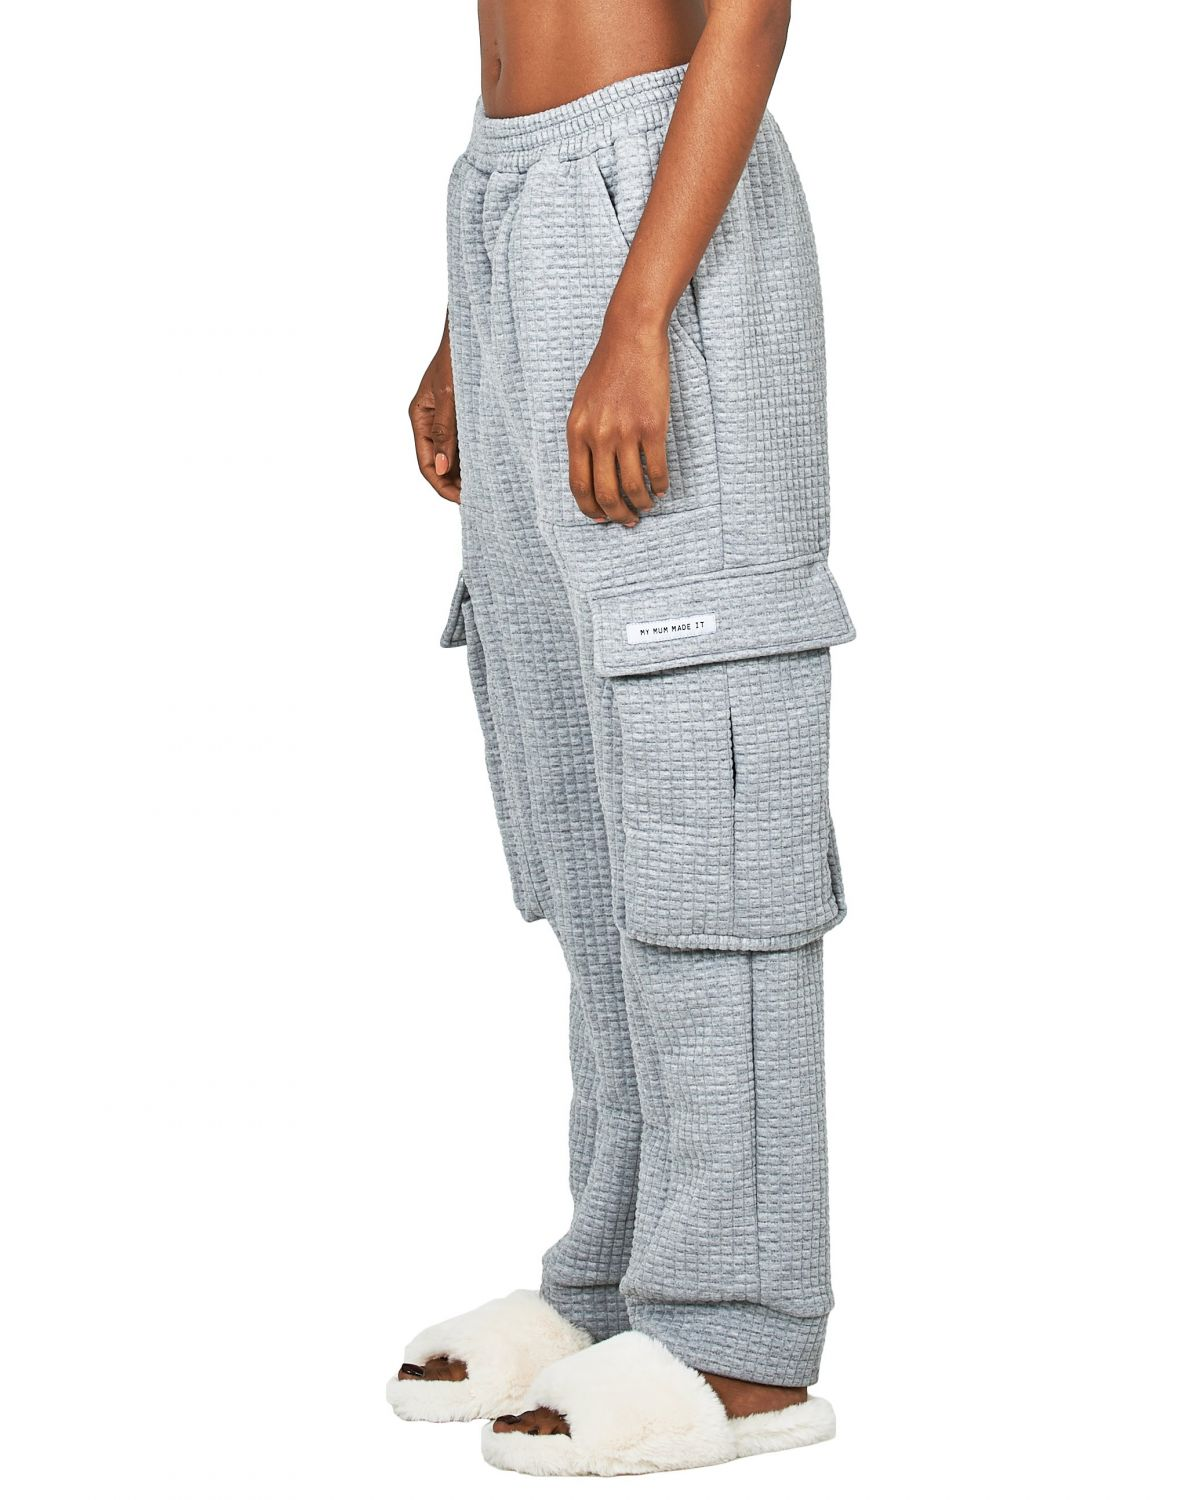 Grey Quilted Pocket Sweatpants by My Mum Made It, available on mymum-madeit.com for $89 Bella Hadid Pants Exact Product